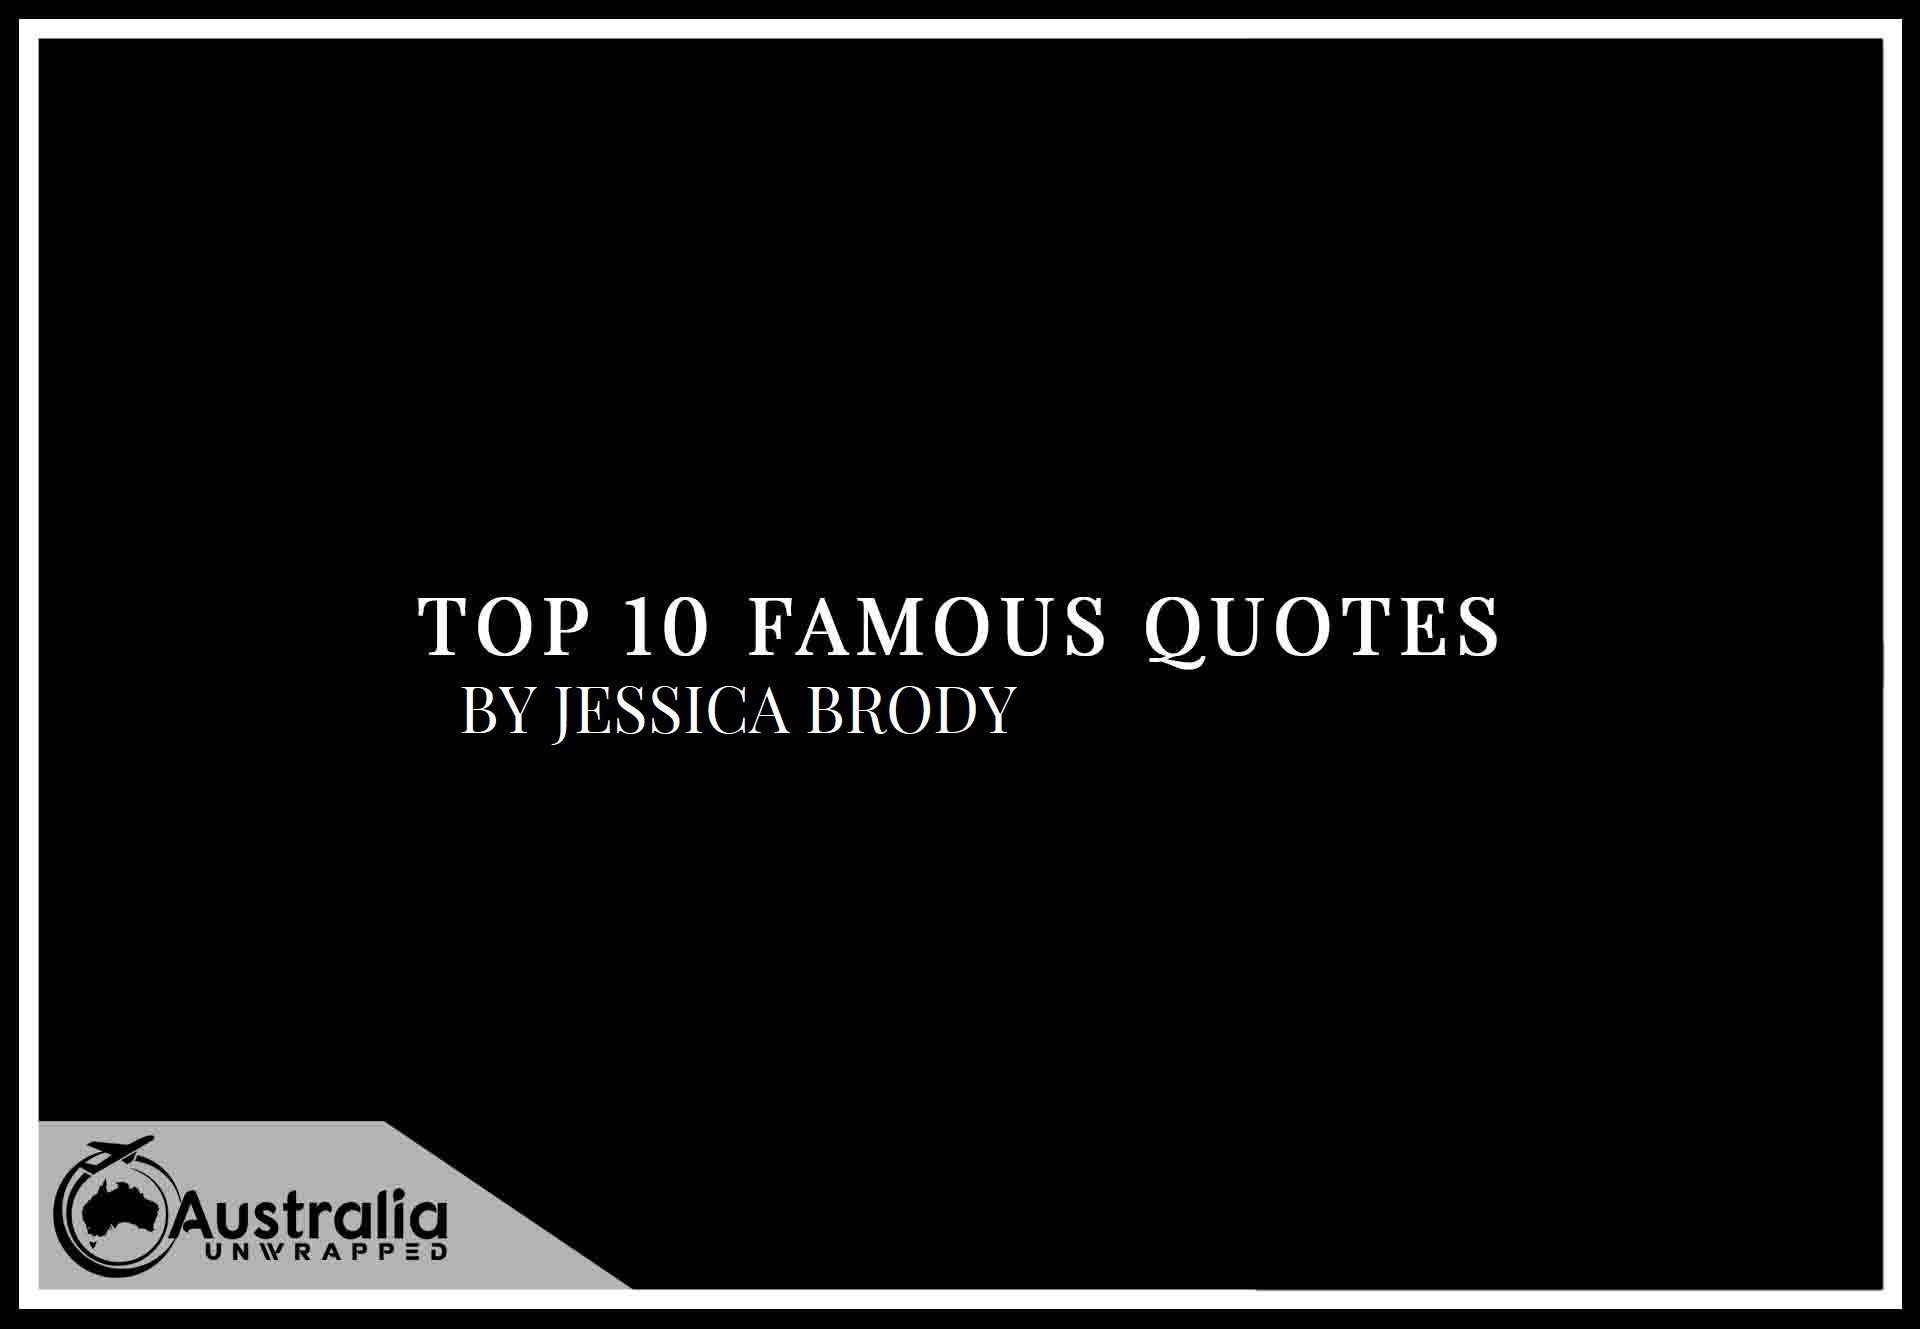 Top 10 Famous Quotes by Author Jessica Brody